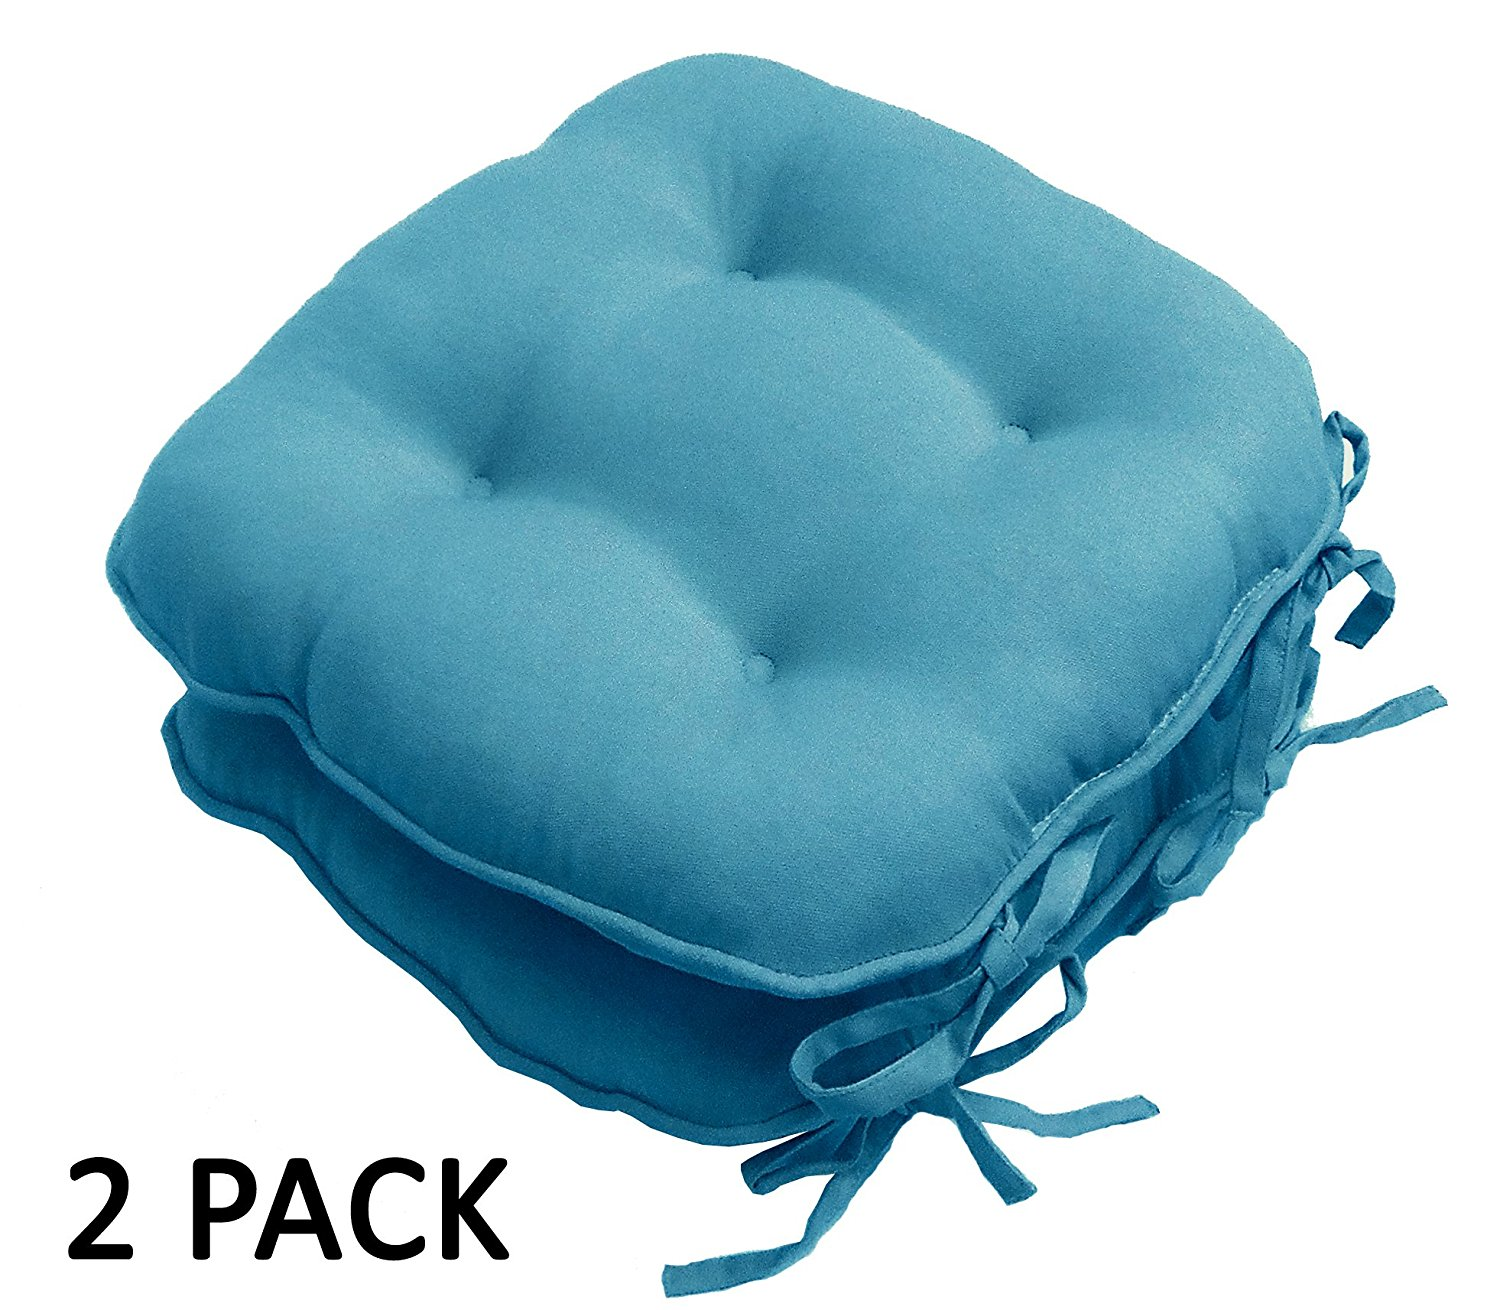 Cotton Craft - 2 Pack Dining Chair Pad with ties - Teal - Overstuffed Dining Chair Cushion - Pure 100% Cotton duck fabric - Convenient ties to anchor pad to chair - Comfy 100% Poly fill